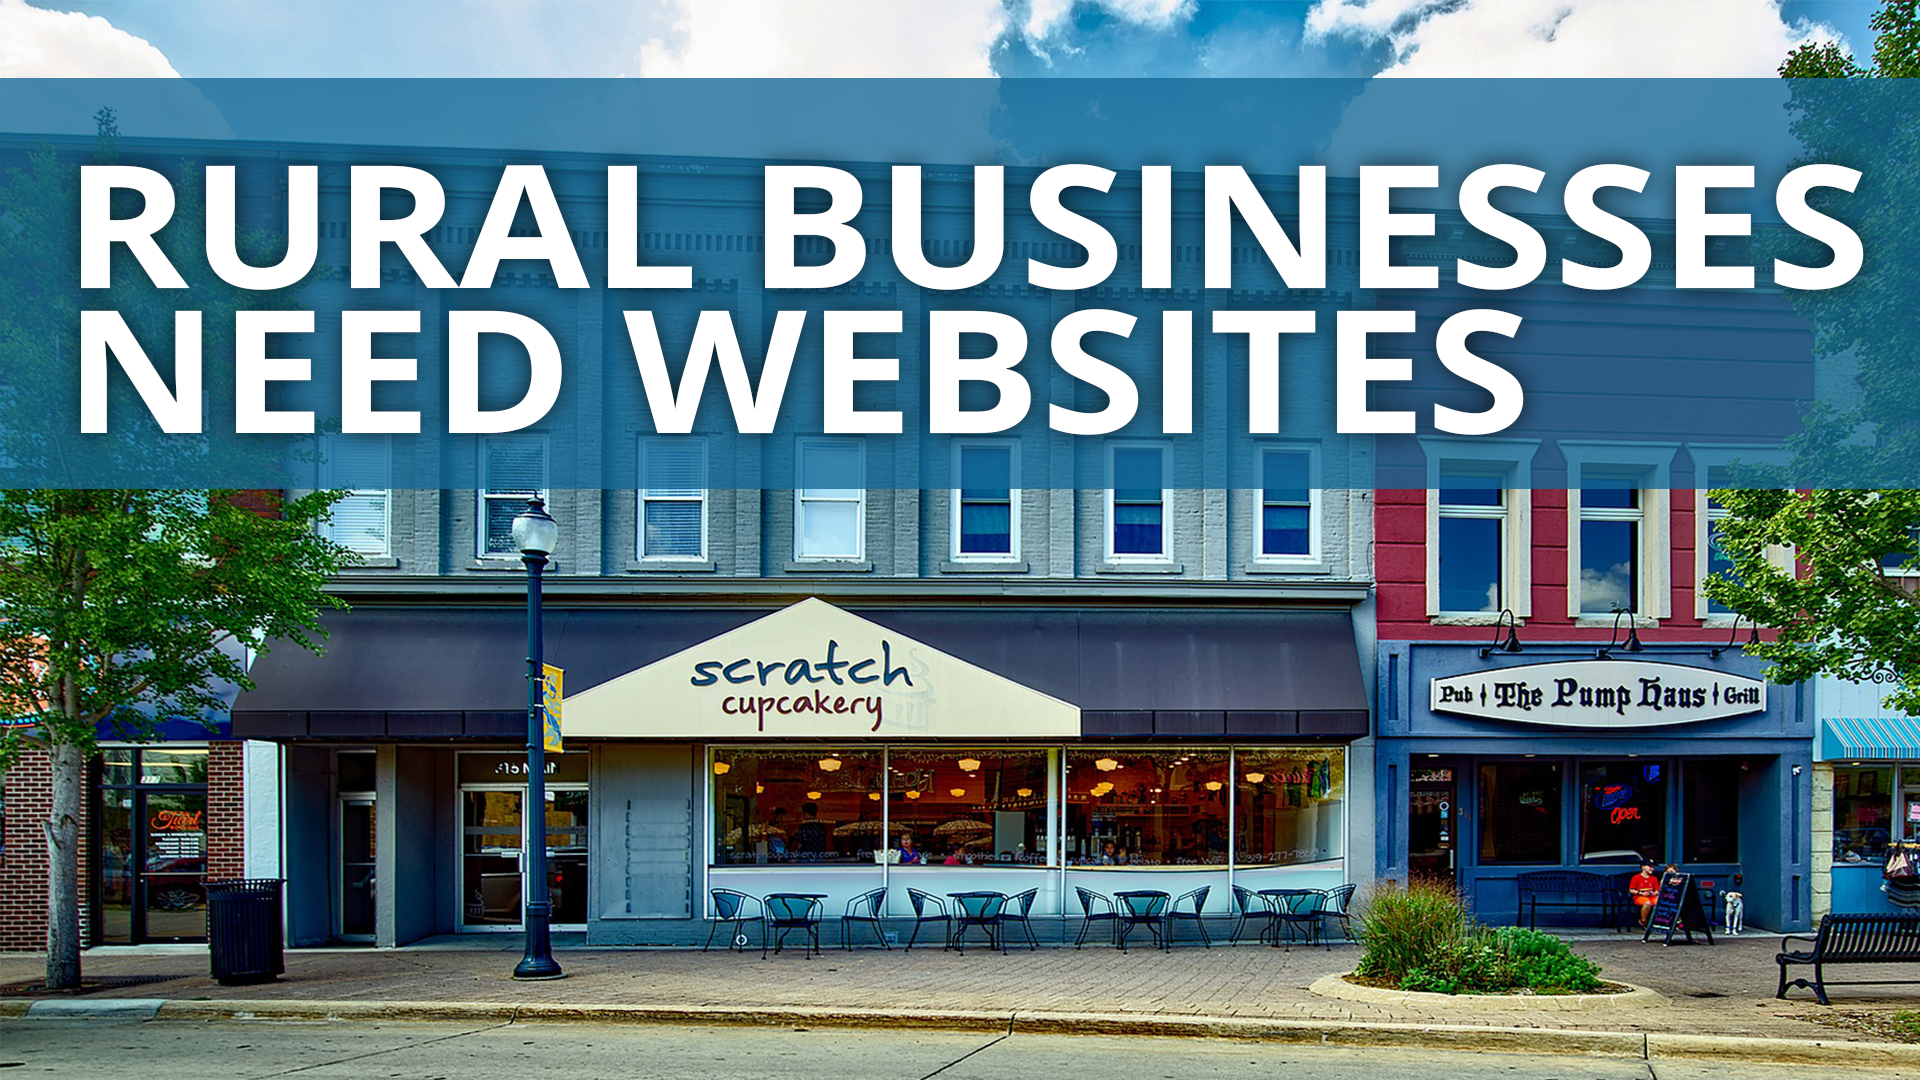 Rural Businesses Need Websites